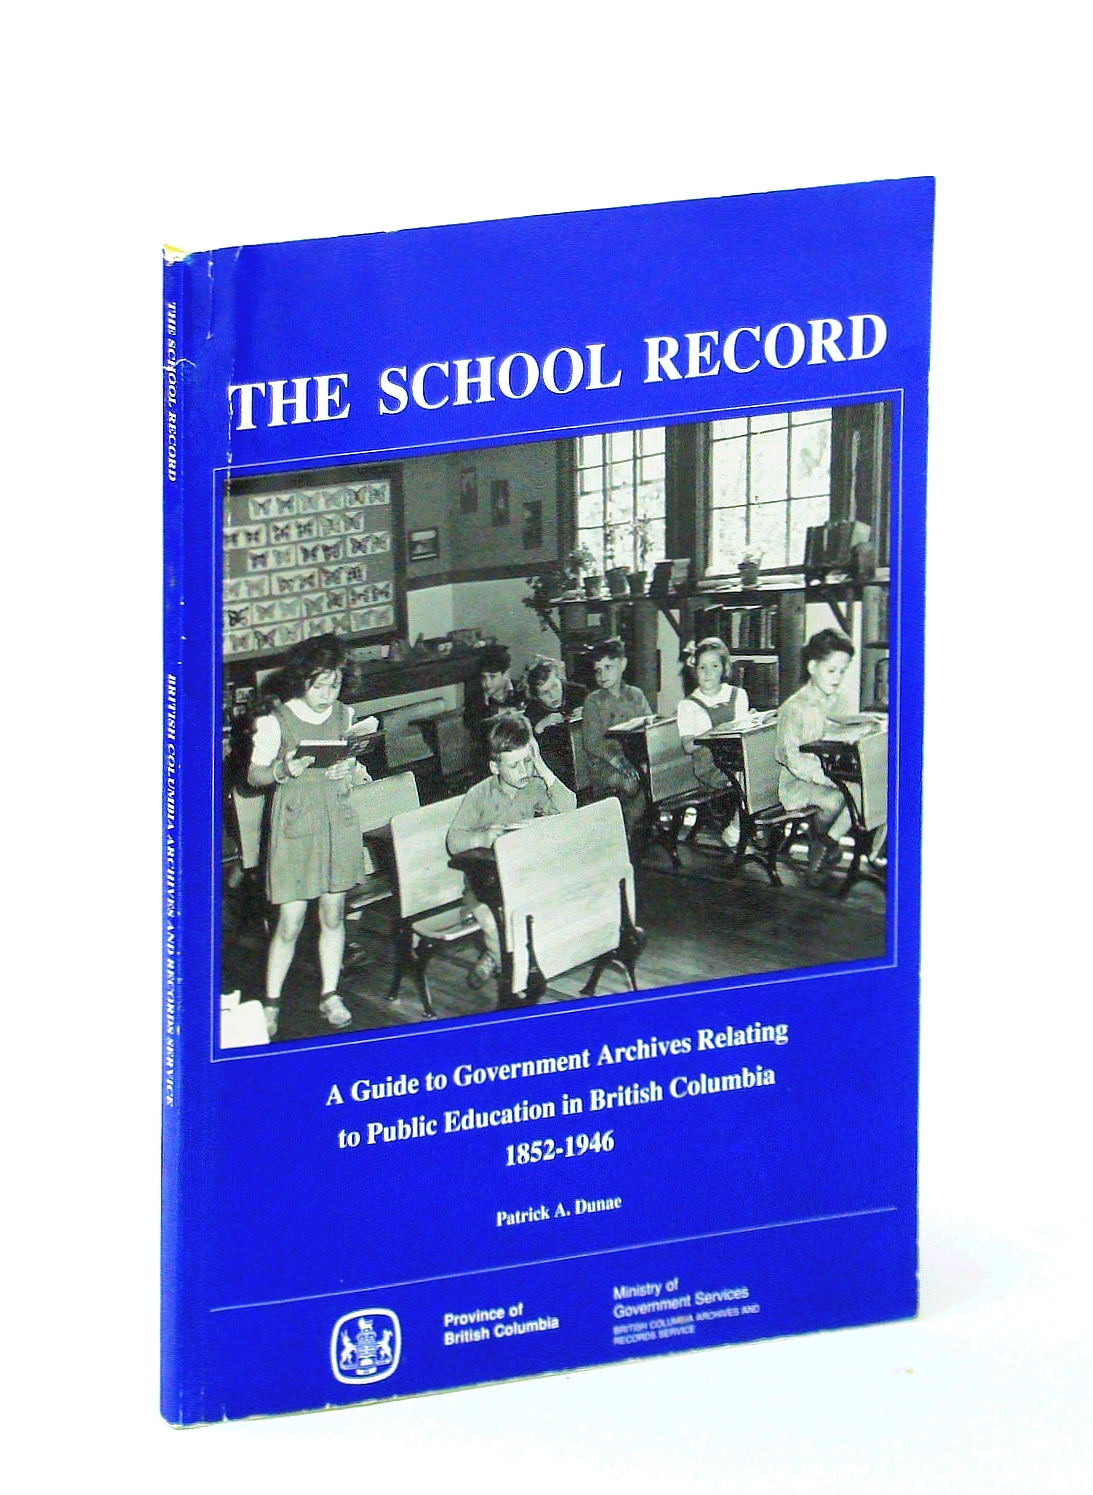 Image for The school record: A guide to government archives relating to public education in British Columbia, 1852-1946